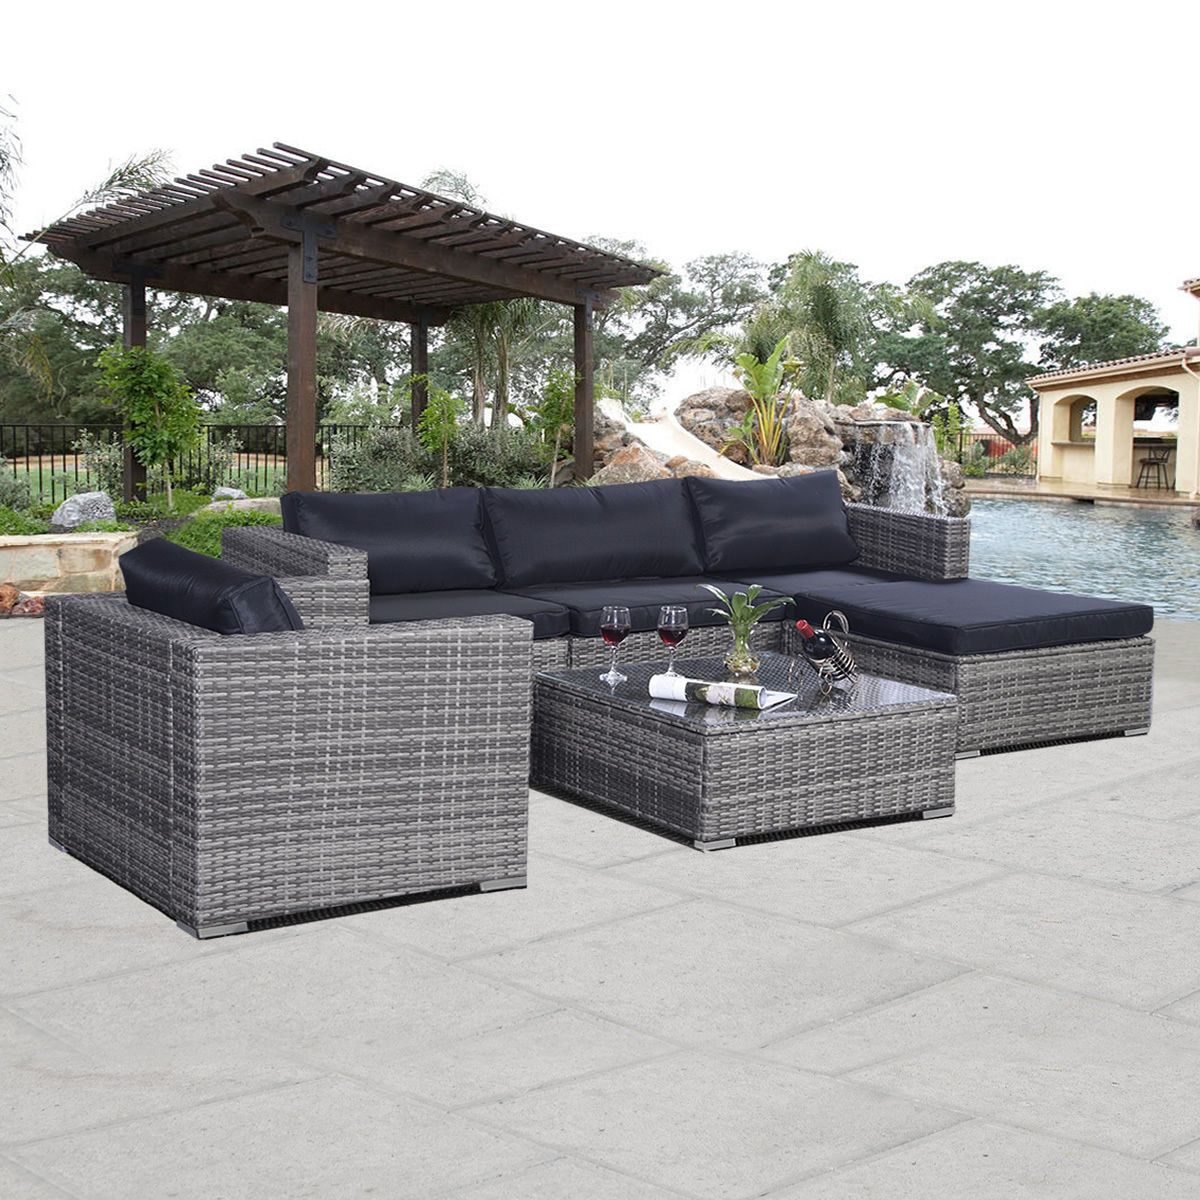 6pc furniture set patio sofa pe gray rattan couch black cushion